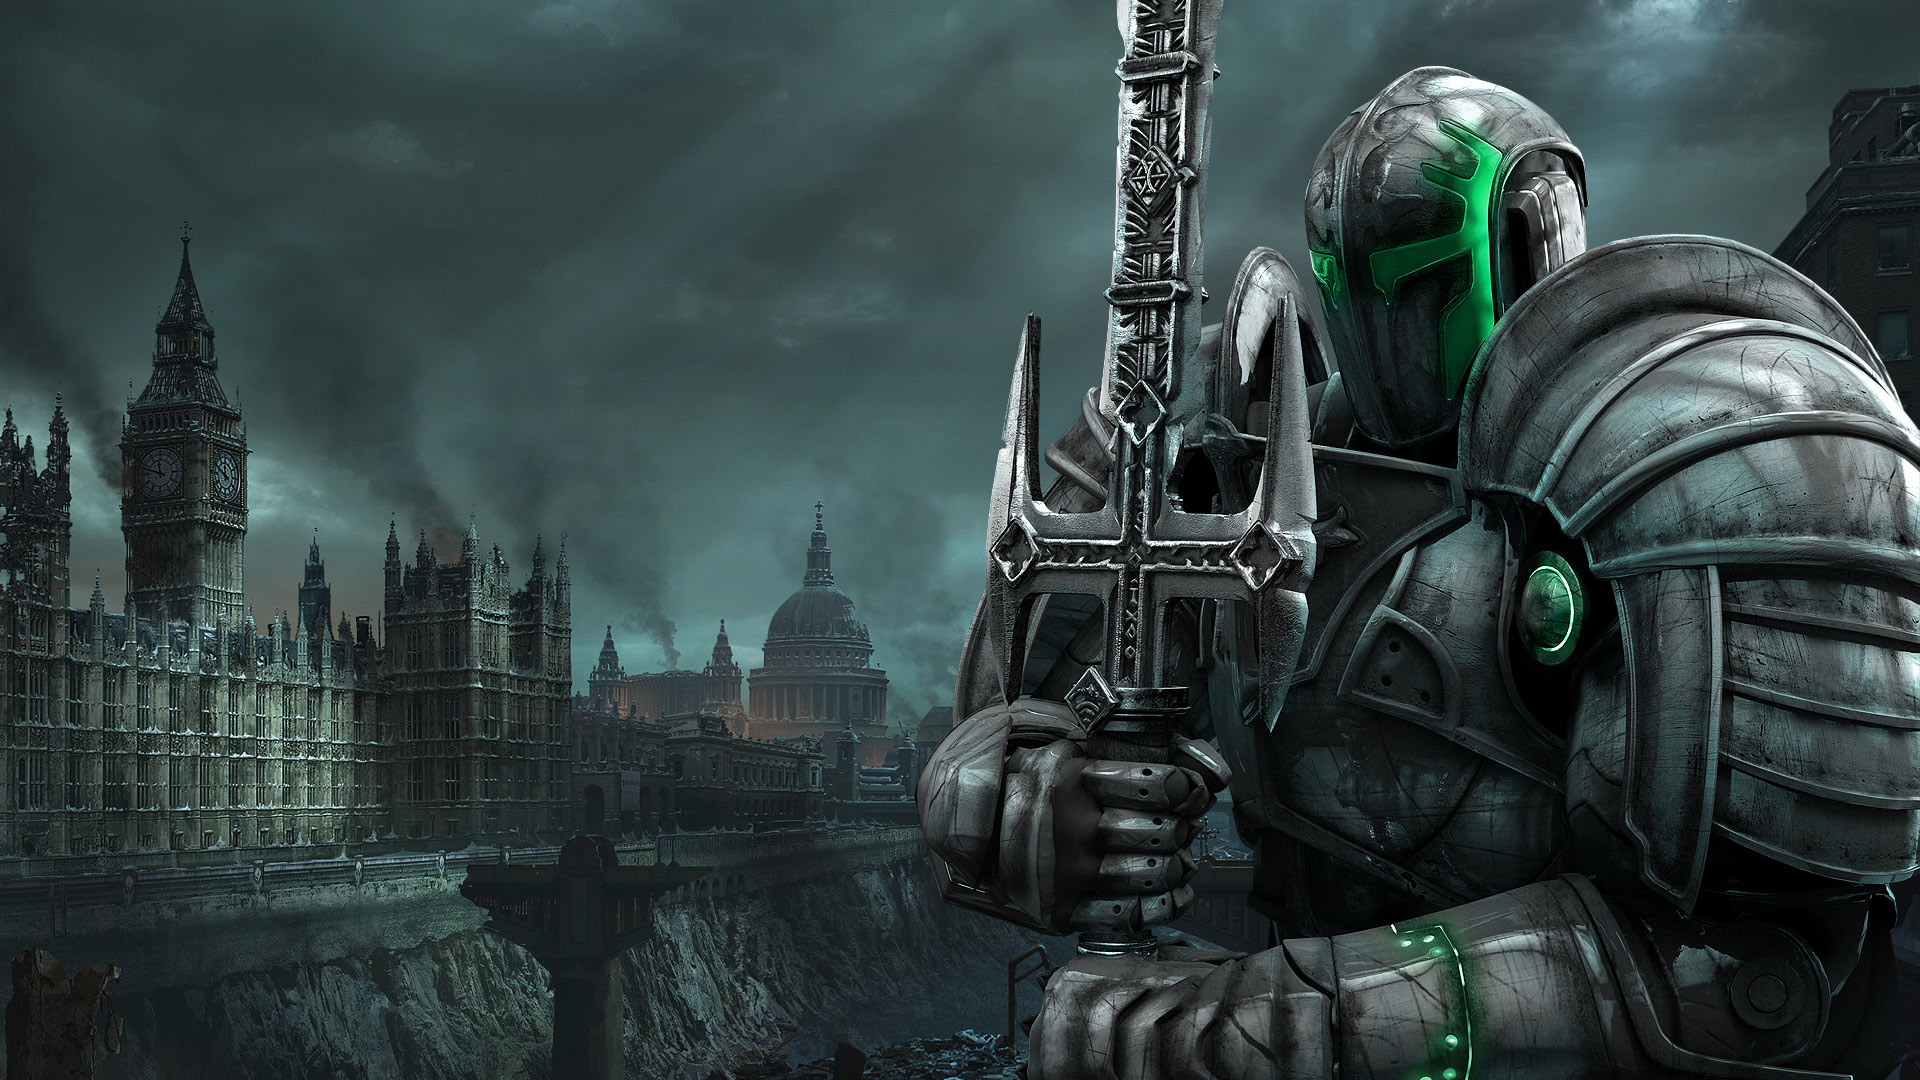 Hellgate London HD Wallpapers HD Wallpapers 1920x1080